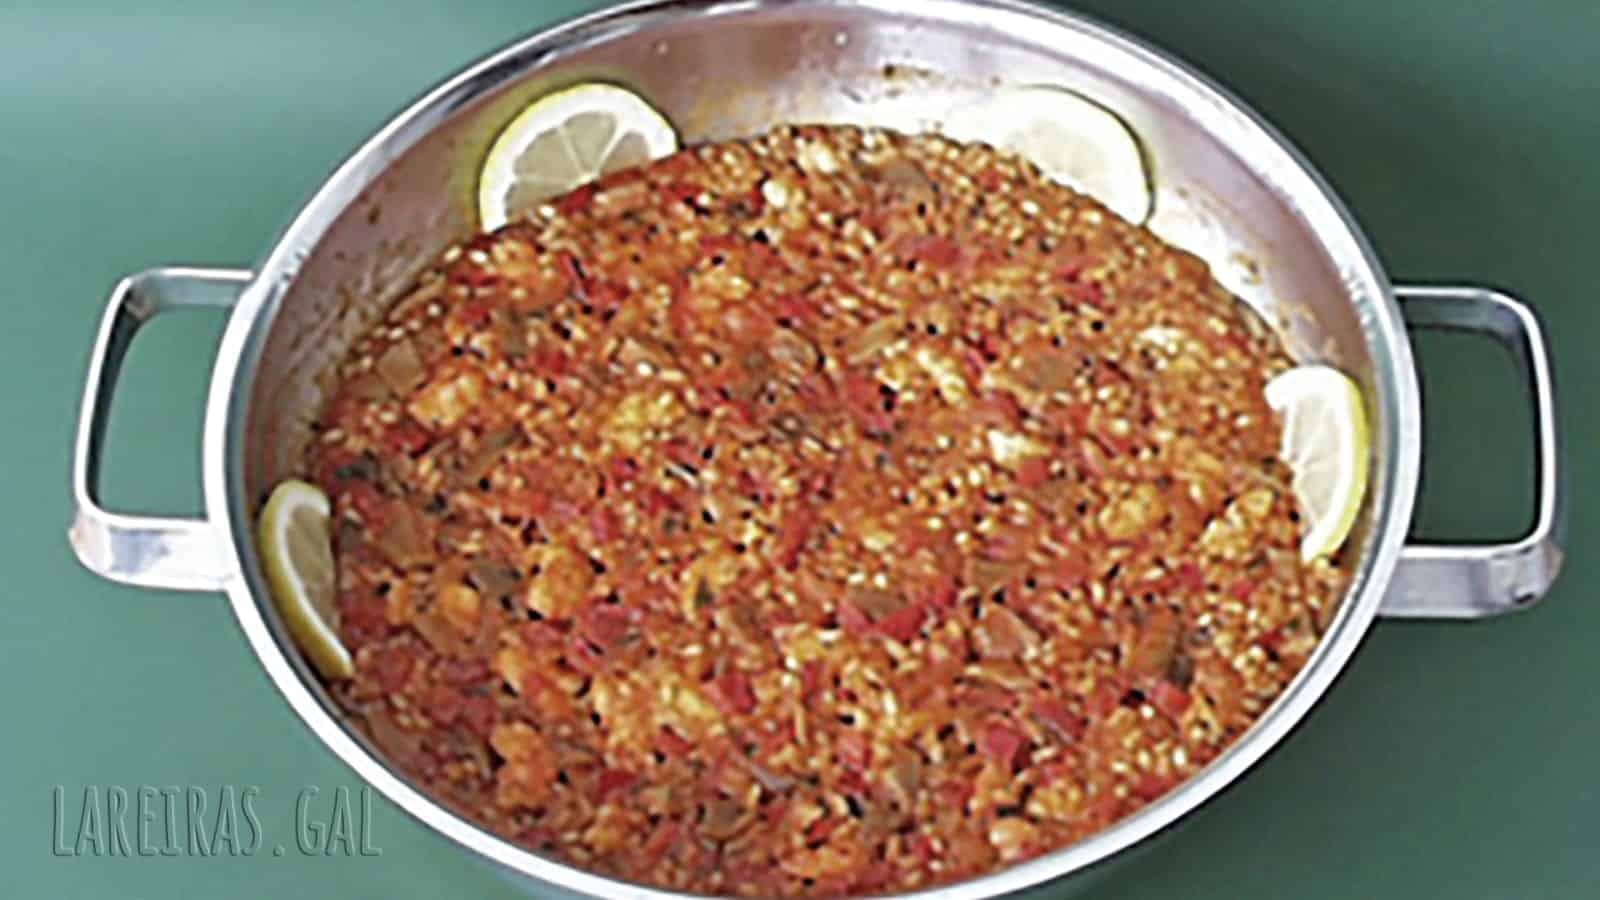 Arroz con cigaliñas